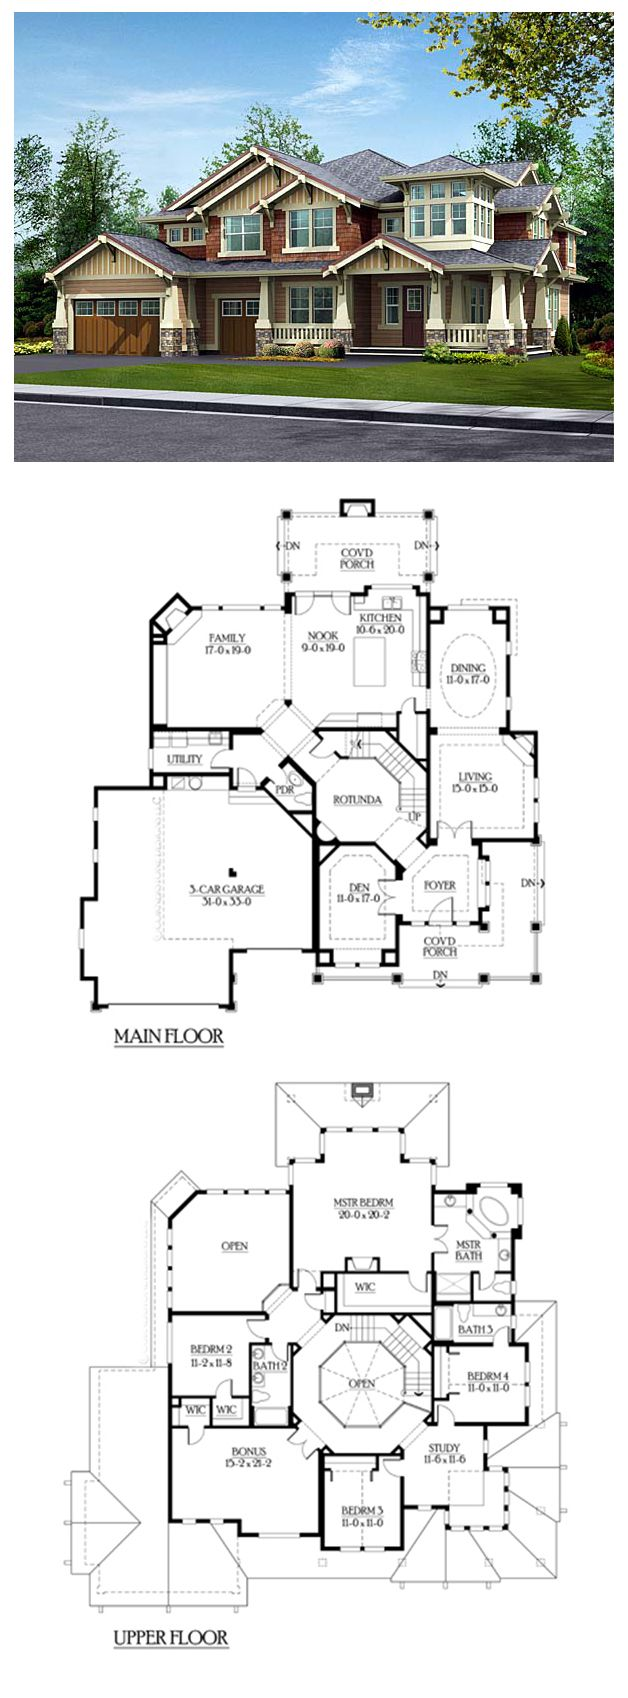 #Luxury #HousePlan 87574 has 4084 square feet of living space, 4 bedrooms and 3.5 bathrooms with a #craftsman exterior. Main floor: 3 car garage, den, rotunda, living, dining, kitchen & nook, powder room, family room and utility room. Upstairs: study, master suite, bonus room and three smaller bedrooms.